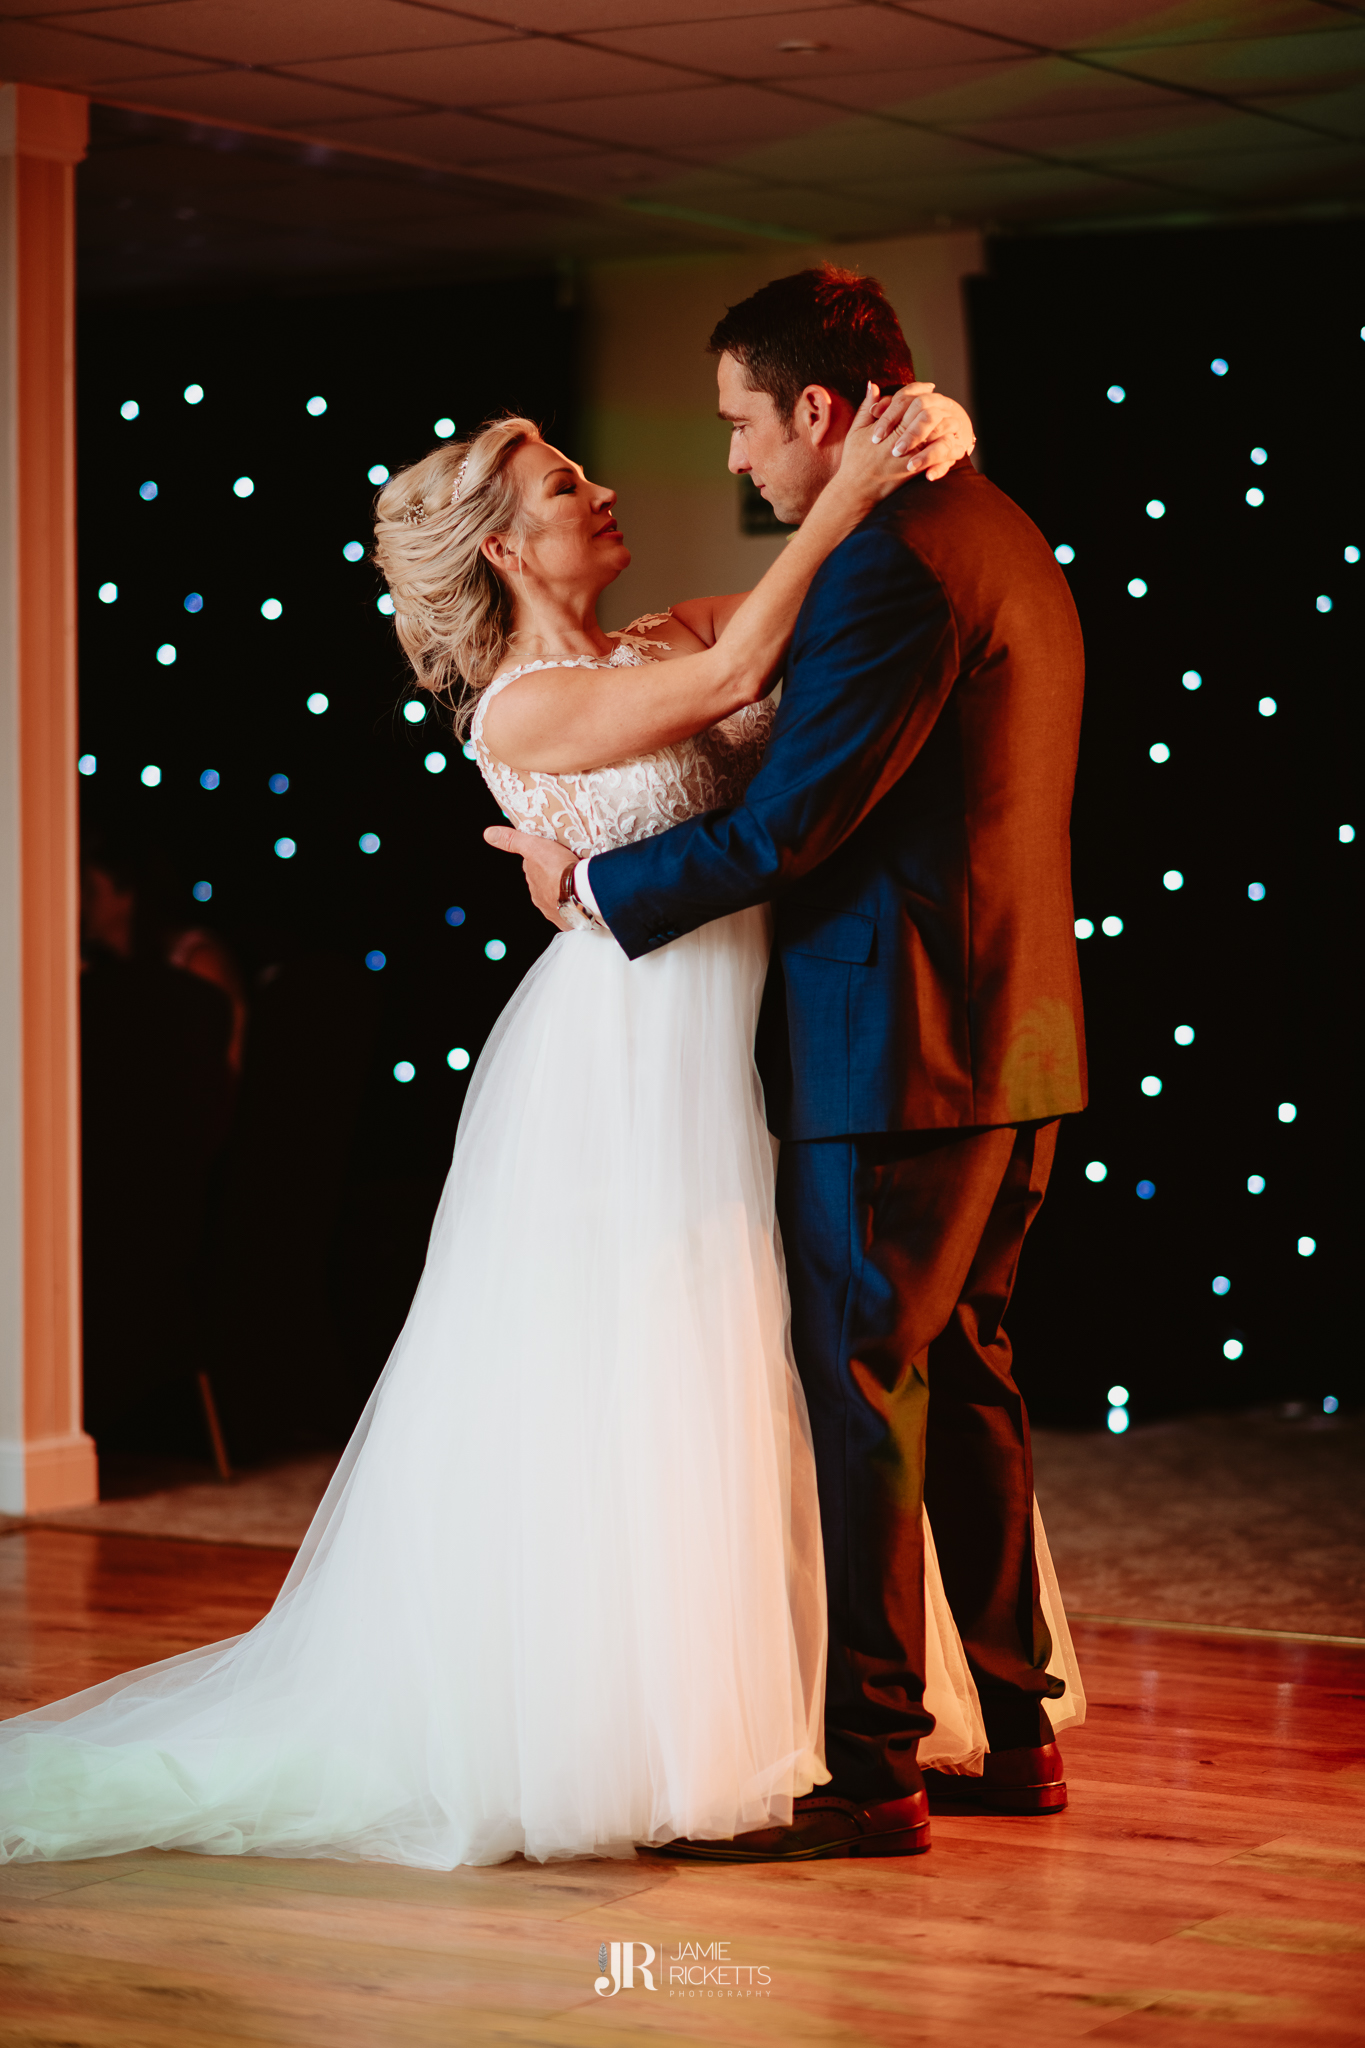 Wroxeter-Hotel-Wedding-Photography-In-Shropshire-By-Shropshire-Wedding-Photographer-Jamie-Ricketts-219.JPG